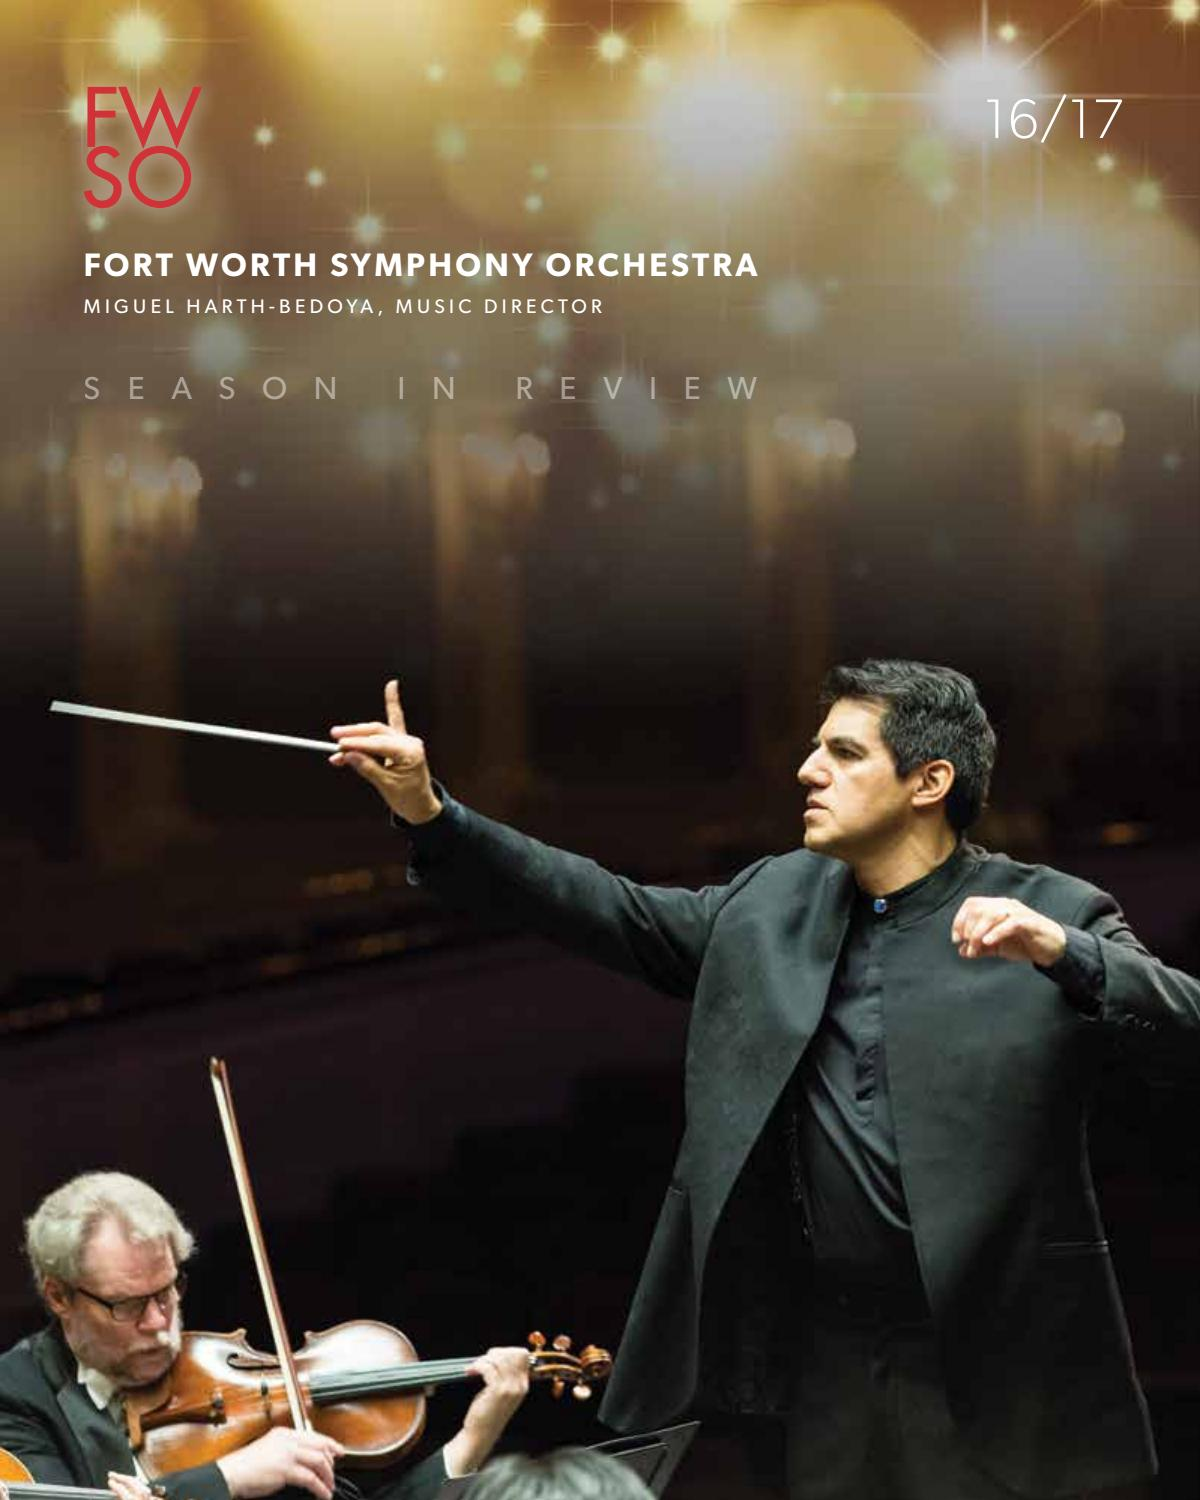 Allene Simmons fort worth symphony orchestra season in review 16/17fort